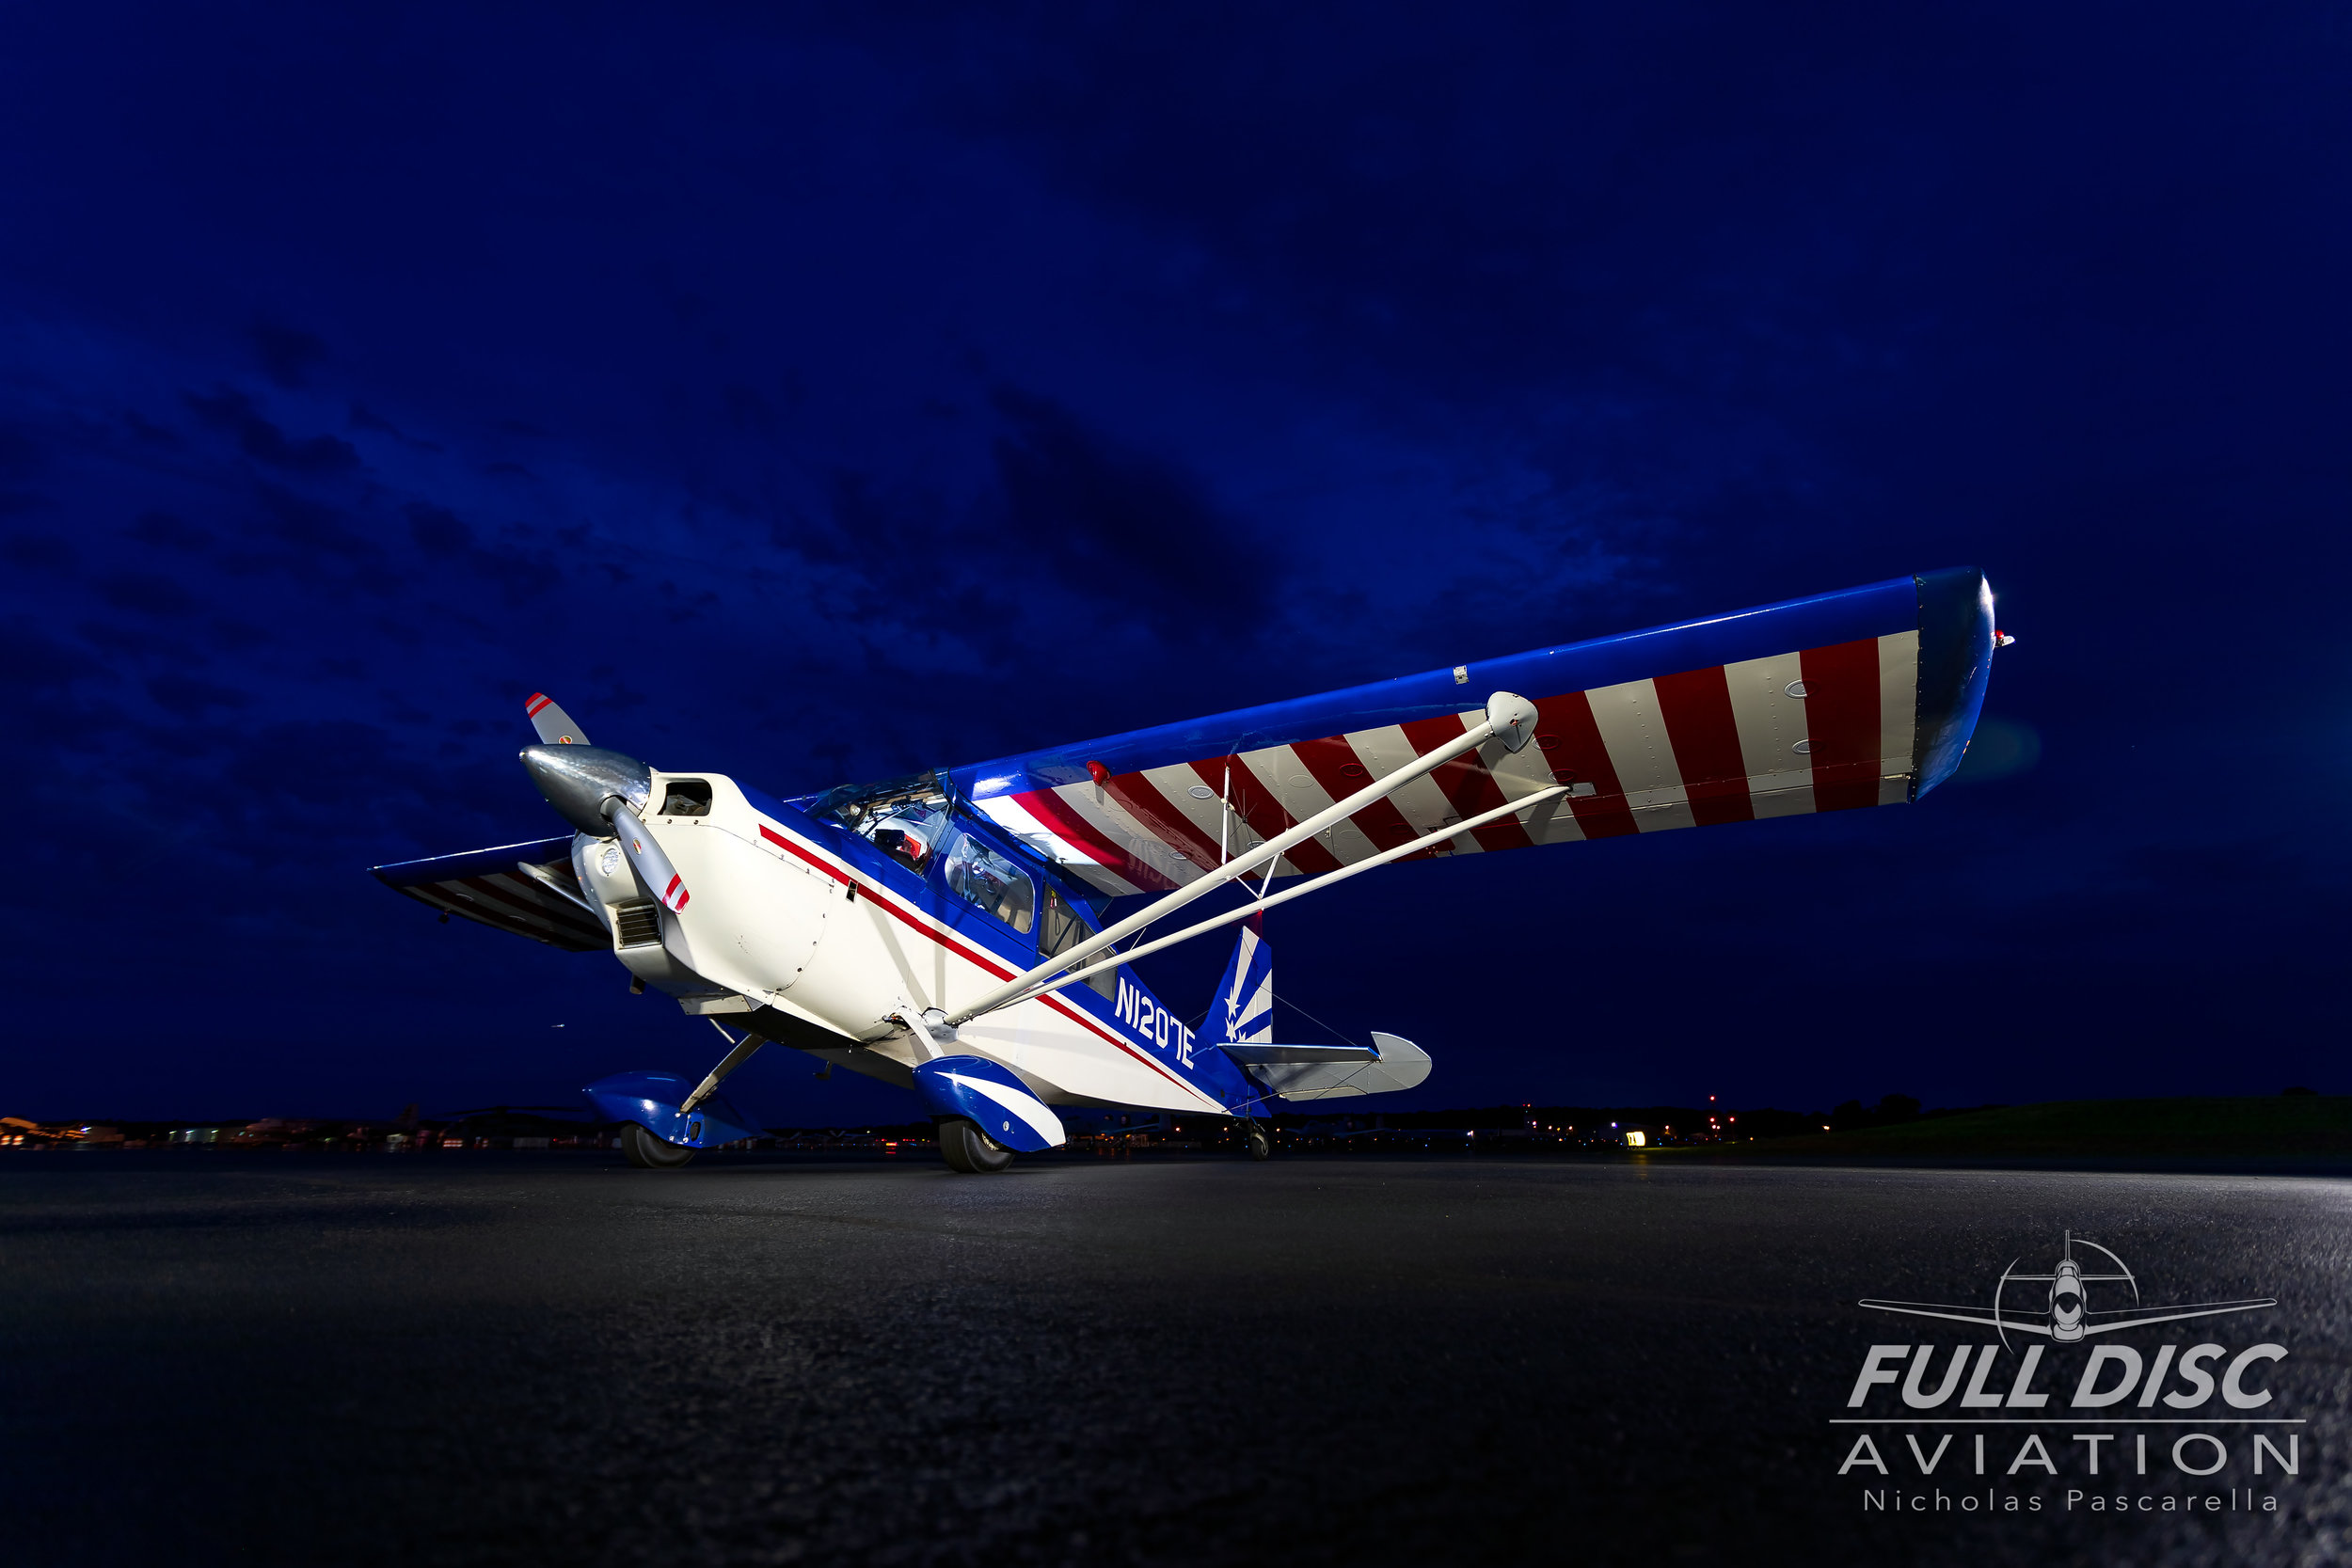 rjgritter_nightshoot_decathalon_airplane_nickpascarella_nicholaspascarella_fulldiscaviation_aviation_.jpg